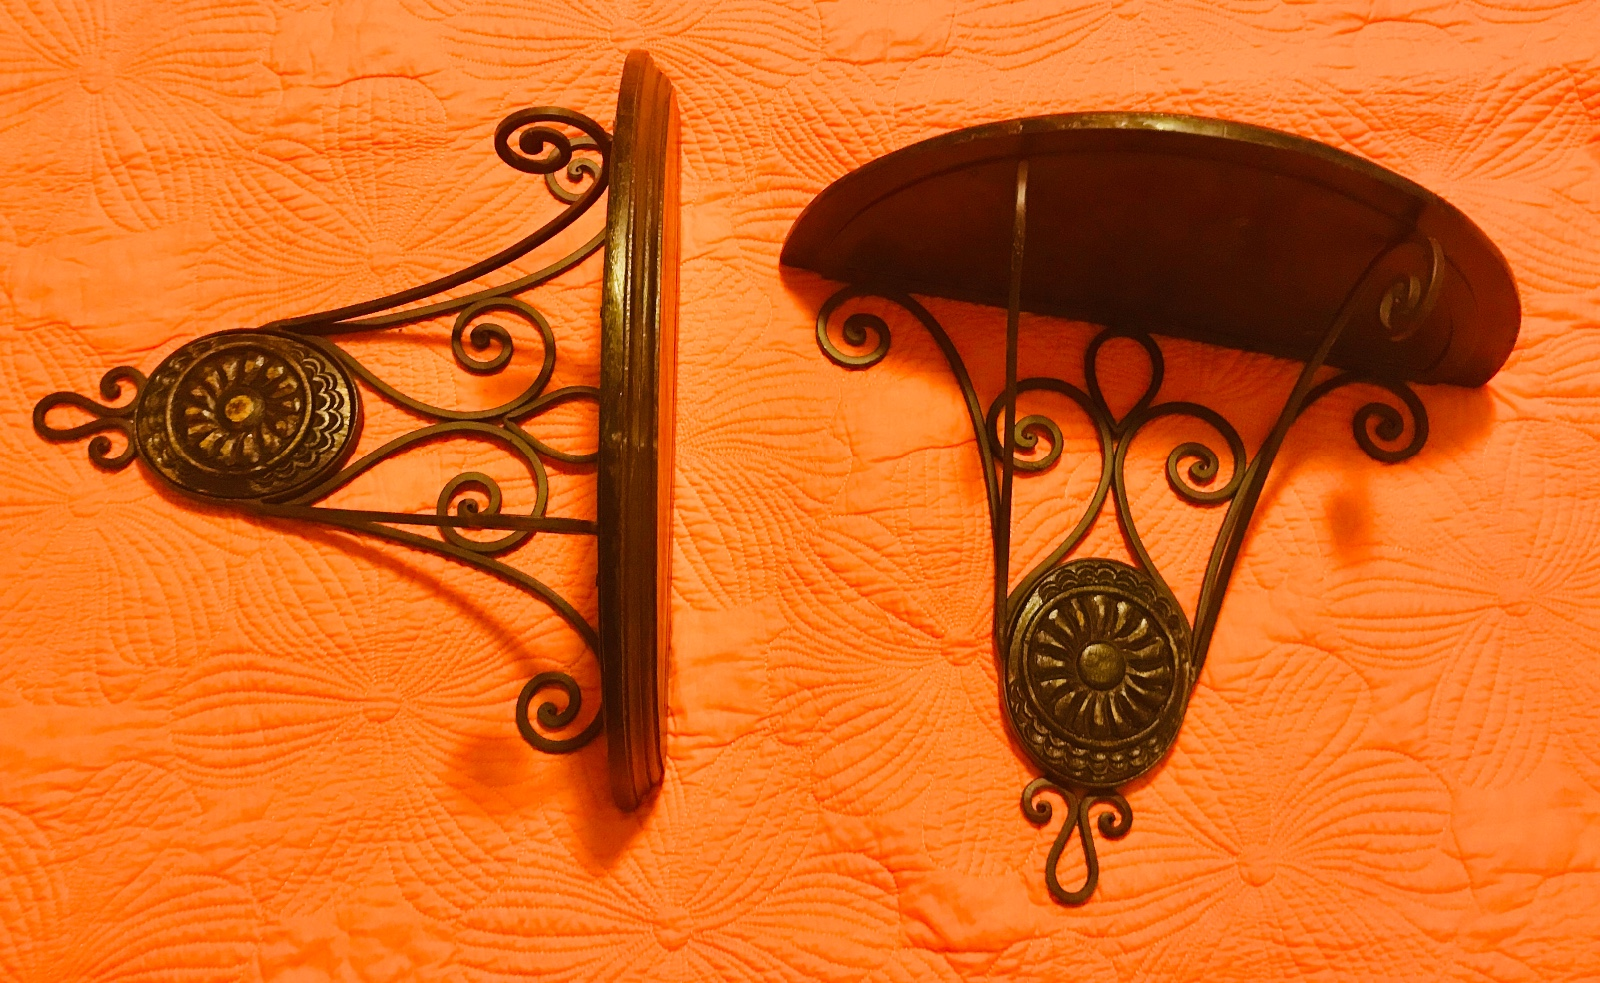 Pair of Wood and Metal Wall Sconces • This pair of wall sconces are a great display item in their own, but picture them as brackets for a custom wall shelf. Display your favorite collection and draw attention to your unique treasures. Price is for the pair. Delivery options available.